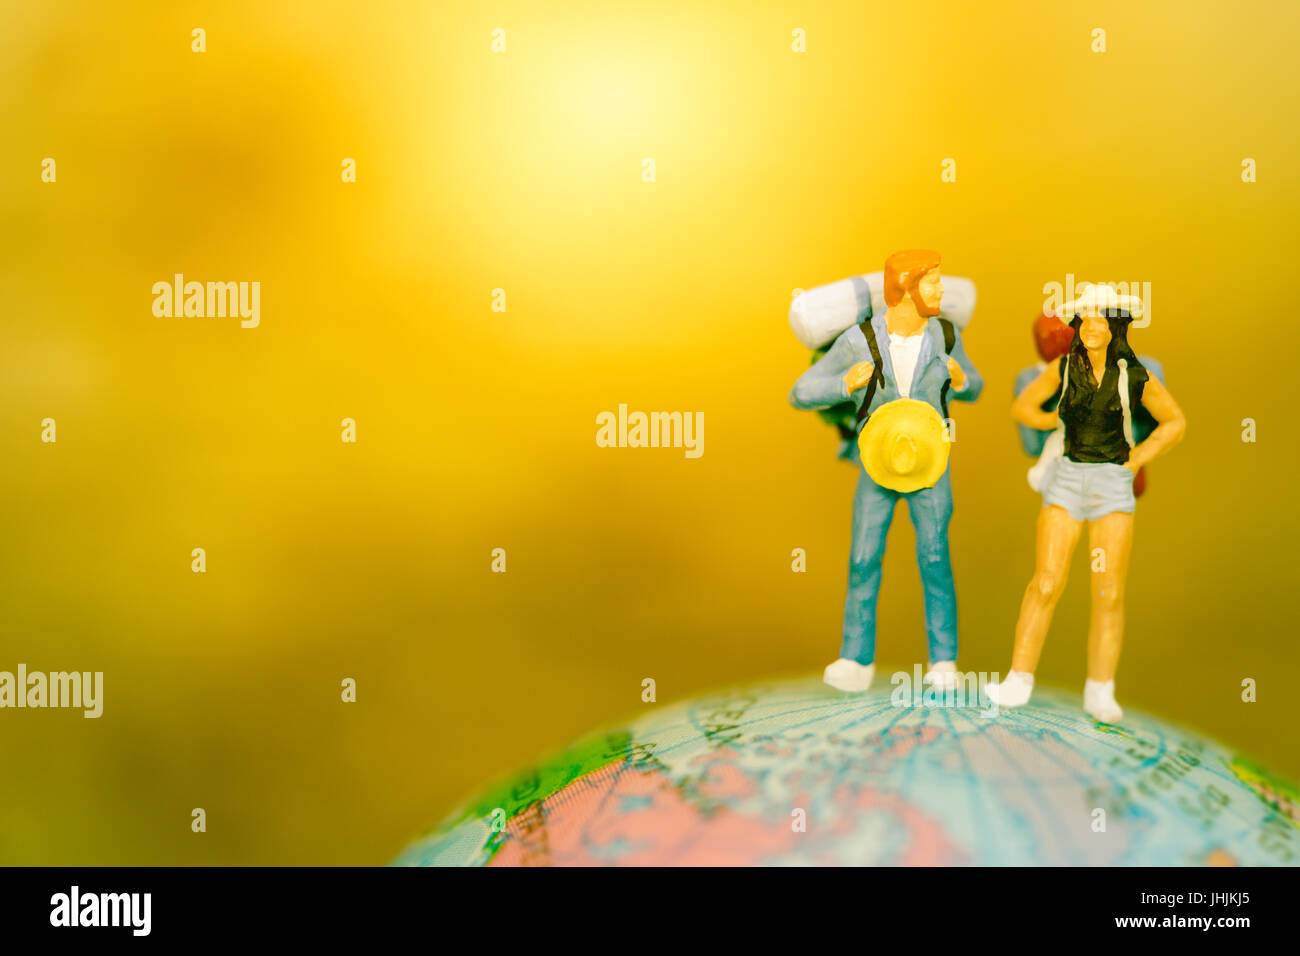 Global Warming and Pollution,Save the wold,Green Earth day concept. Miniature people: Couple backpacker, mini figure, - Stock Image